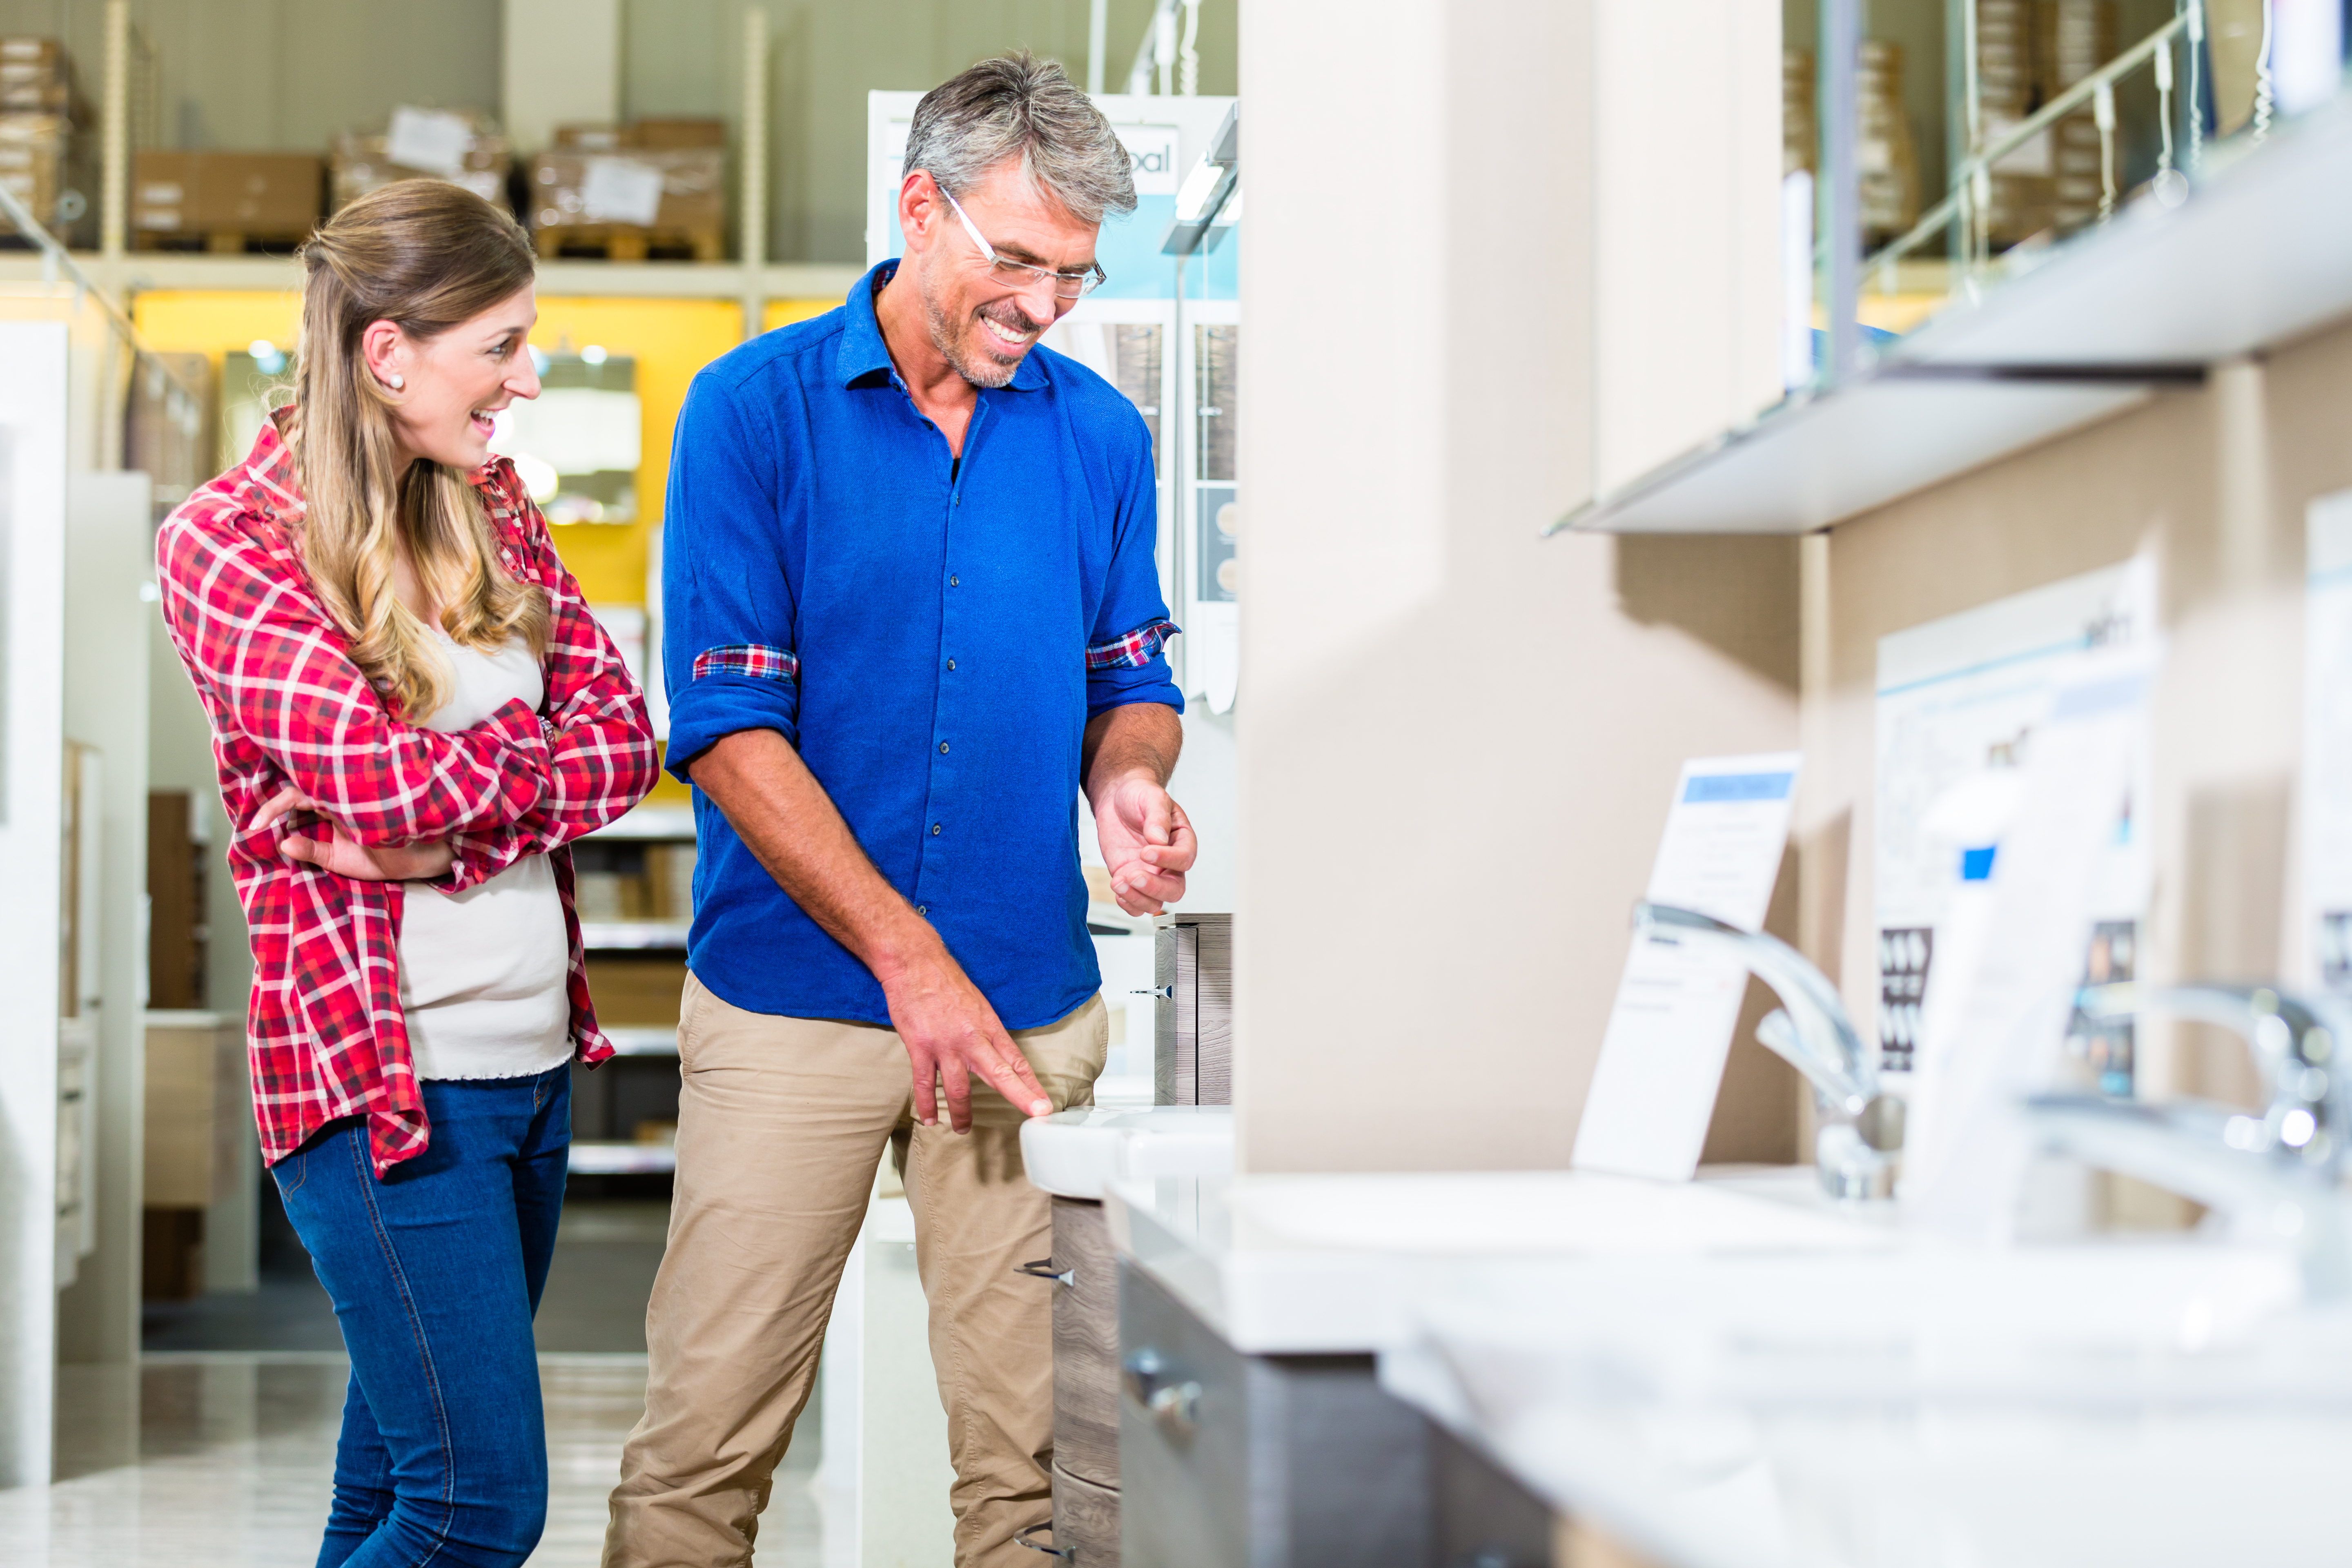 Brick and Mortar Retailers - Last Mile Delivery